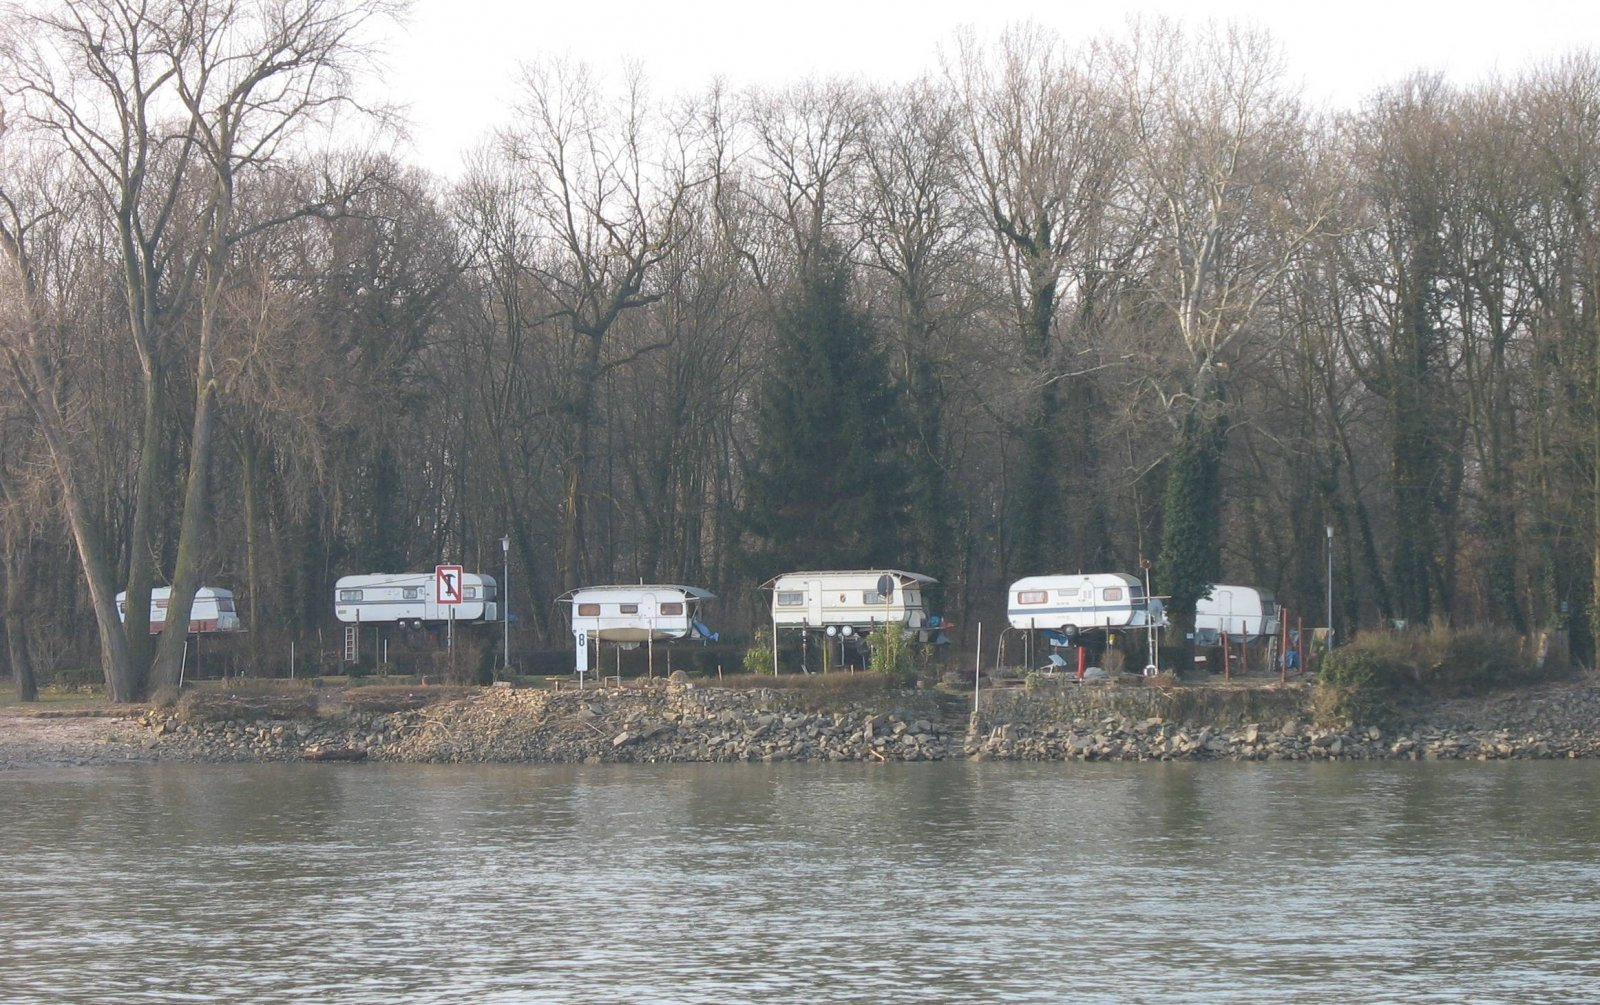 Click image for larger version  Name:trailers_on_stilts.jpg Views:83 Size:394.3 KB ID:194098